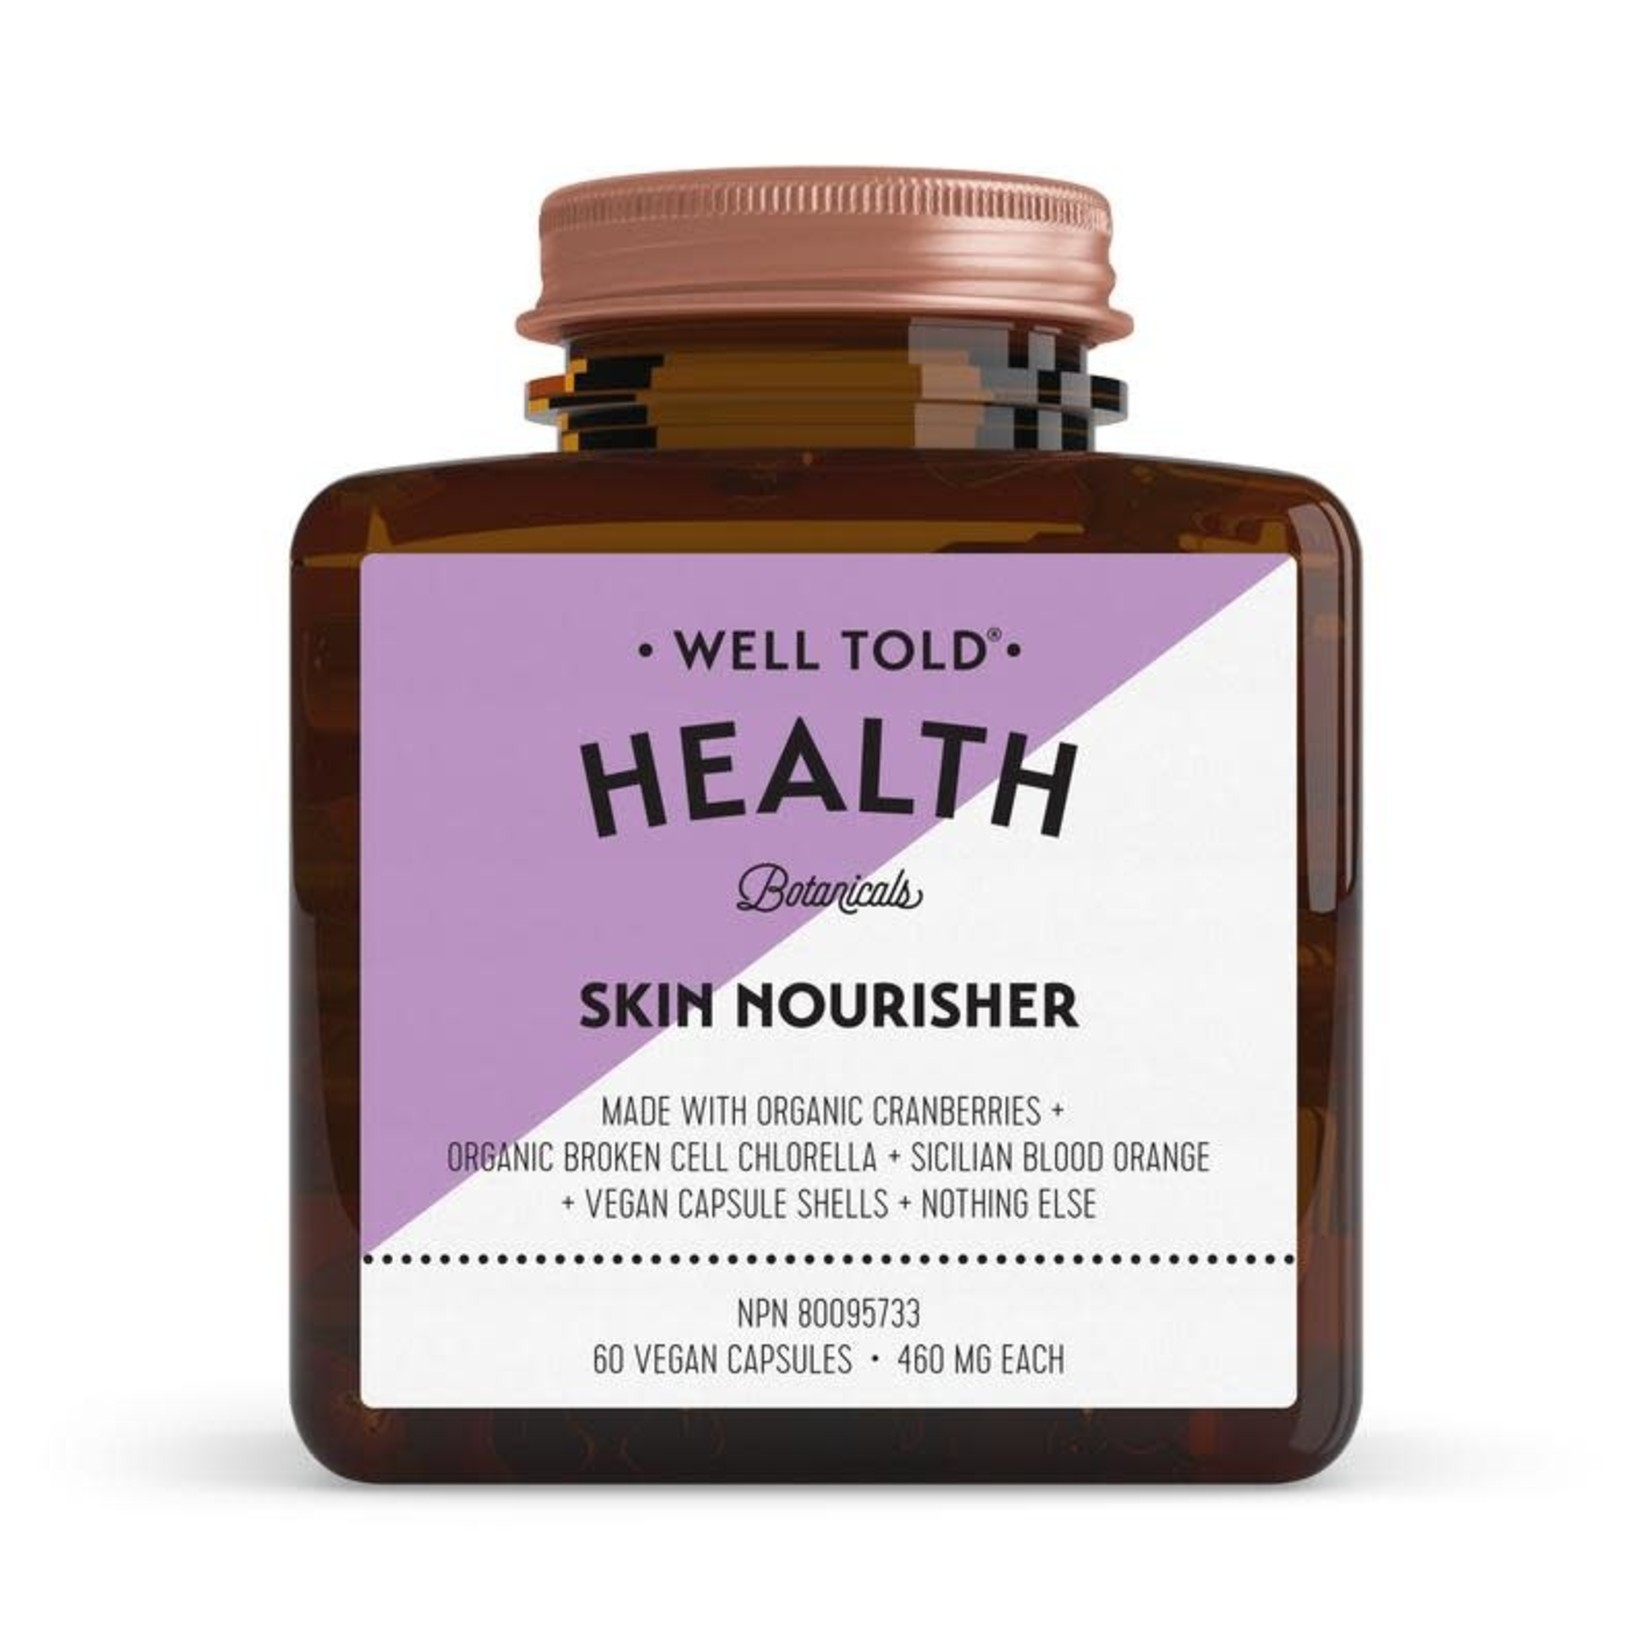 WELL TOLD HEALTH BOTANICALS Skin Nourisher